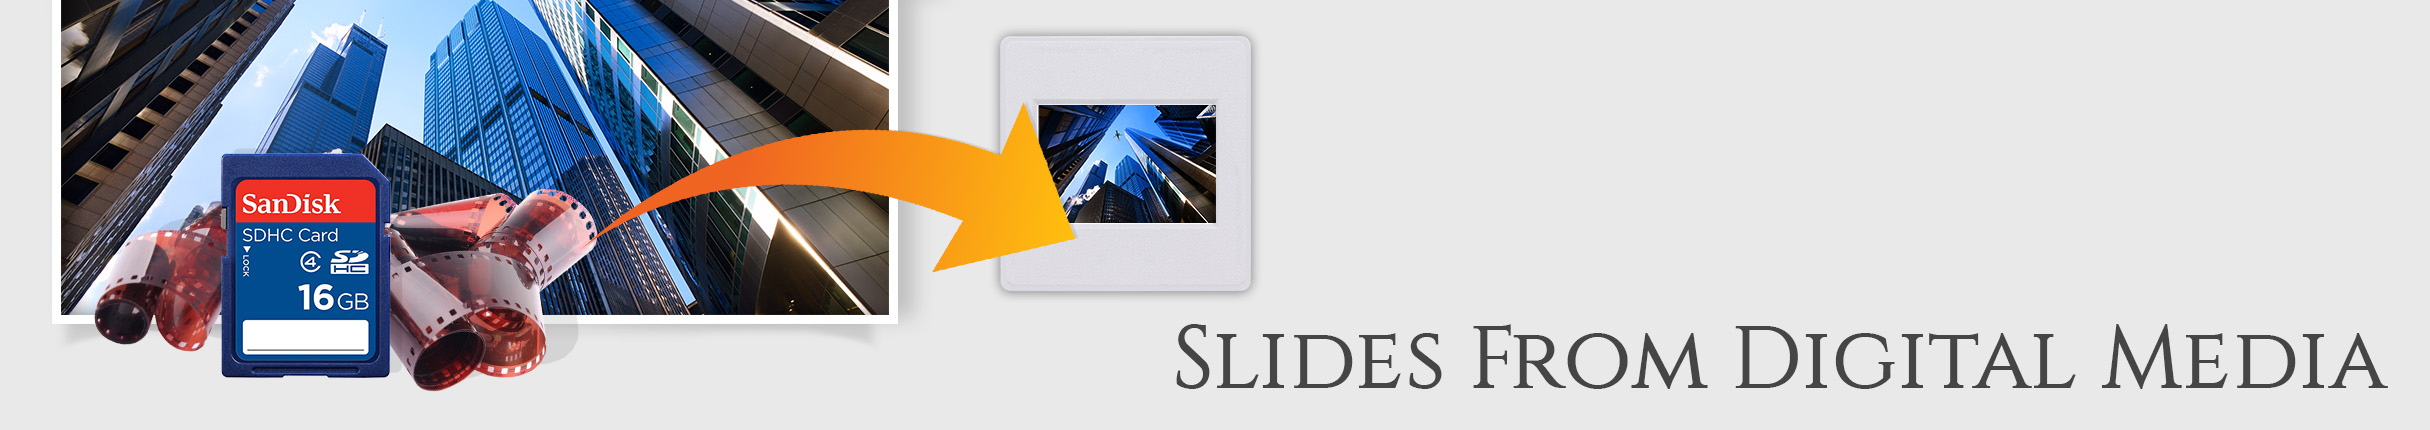 slides from digital media processing banner